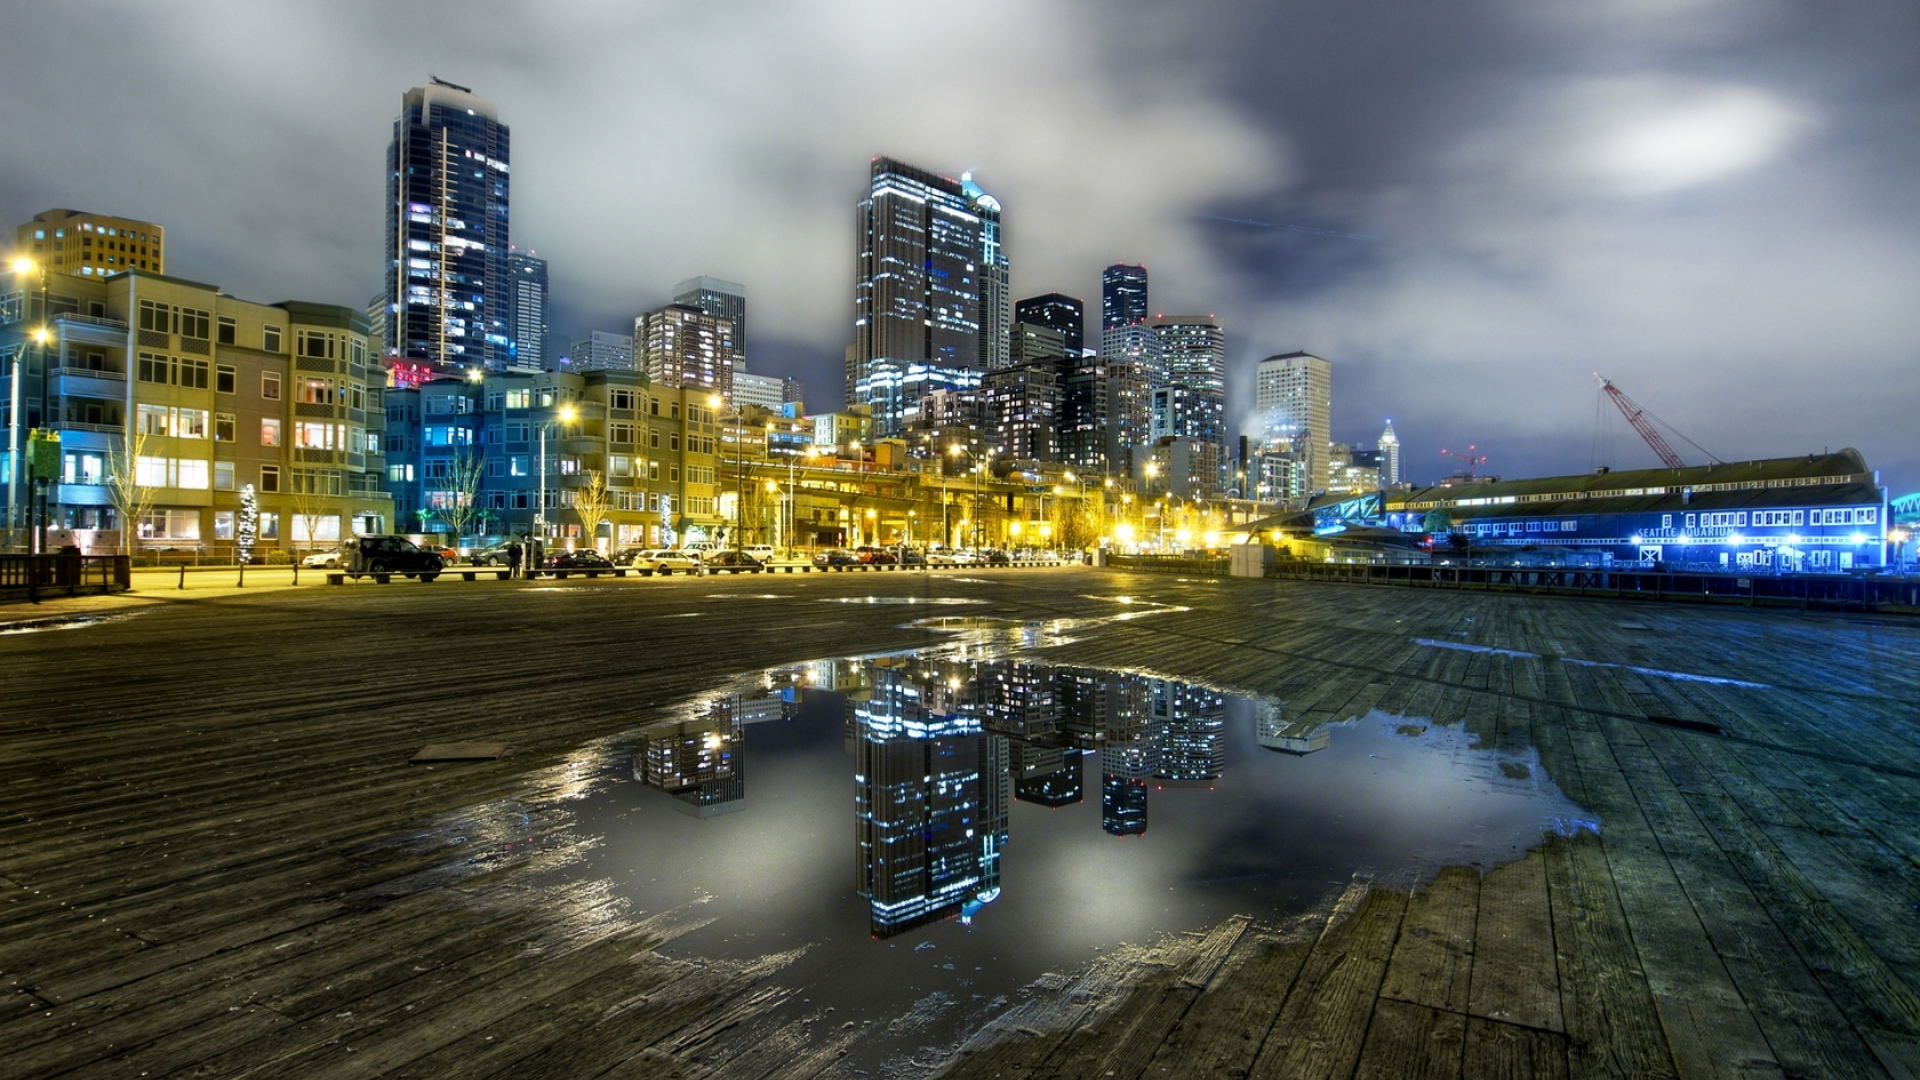 1920x1080 City Seattle Usa 1080p Laptop Full Hd Wallpaper Hd City 4k Wallpapers Images Photos And Background